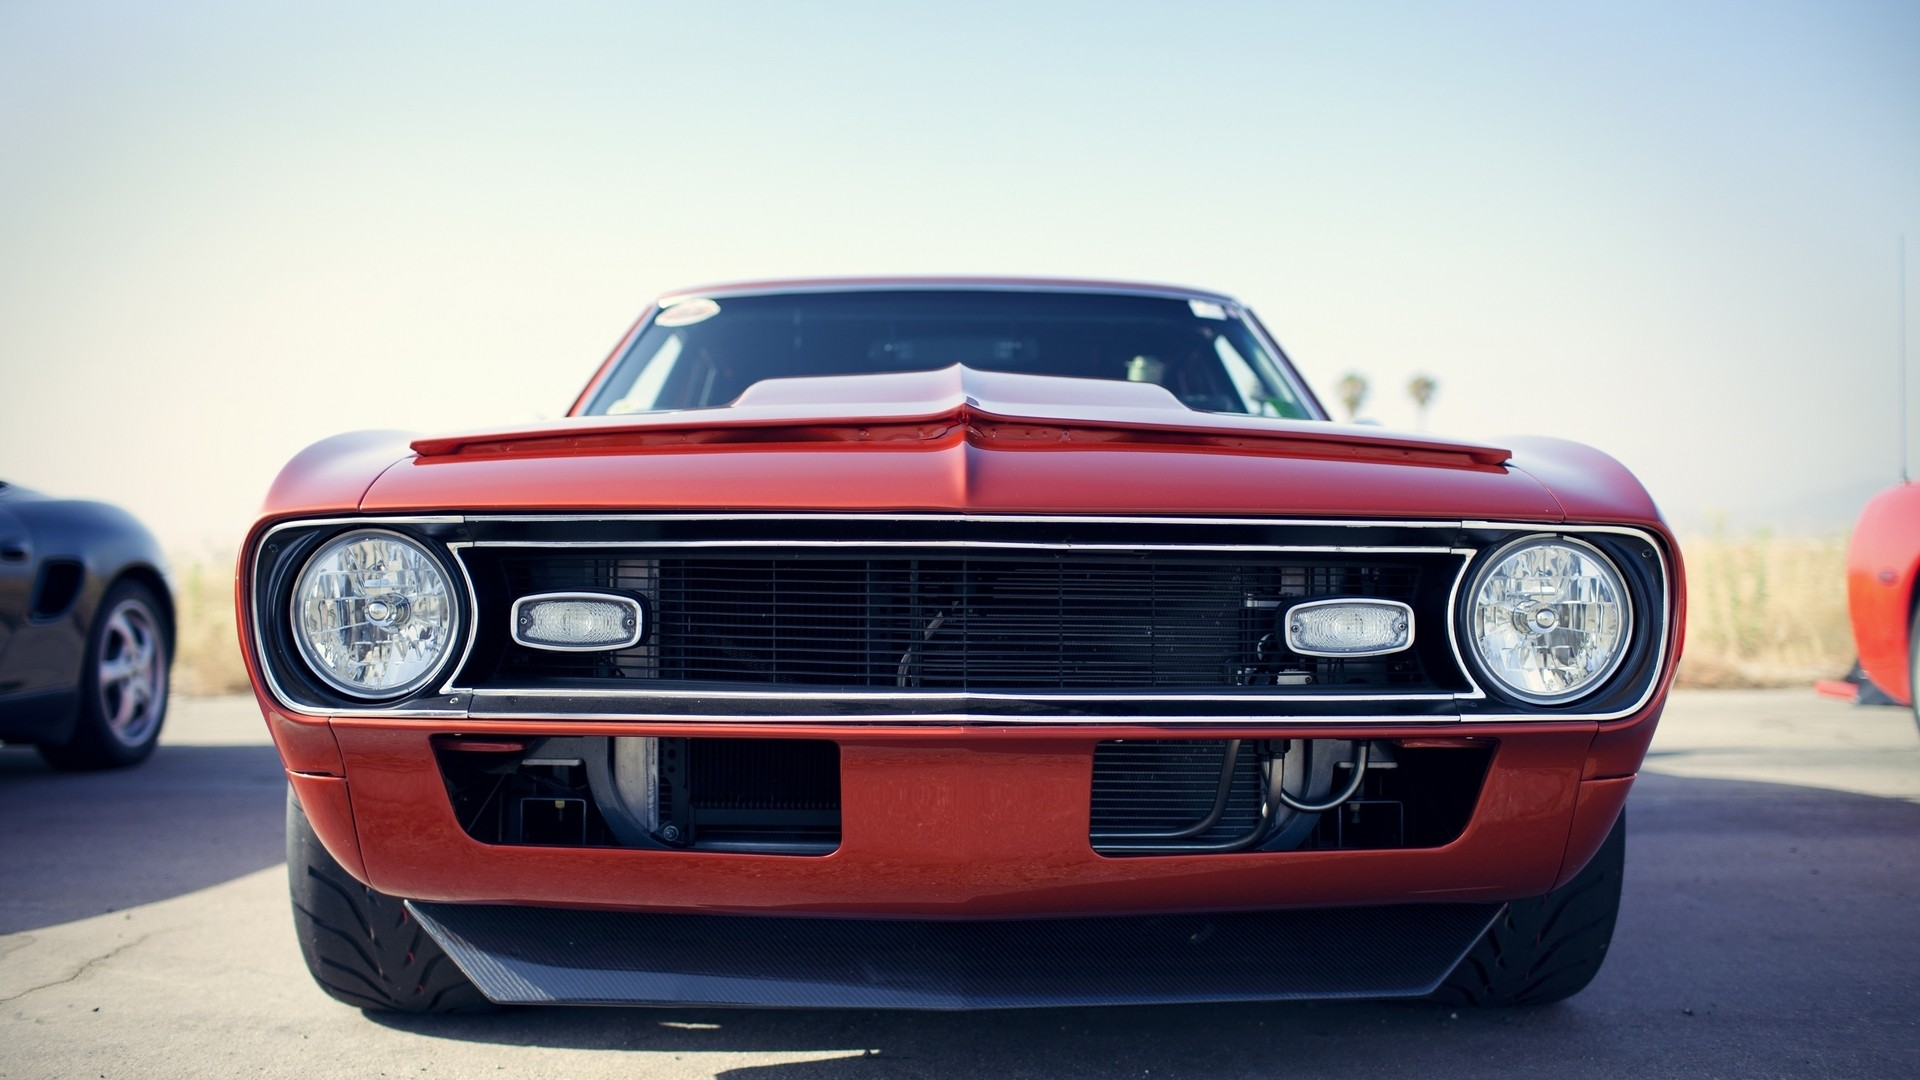 Cars Muscle Wallpaper 1920x1080 Cars Muscle Cars Chevrolet Camaro 1920x1080